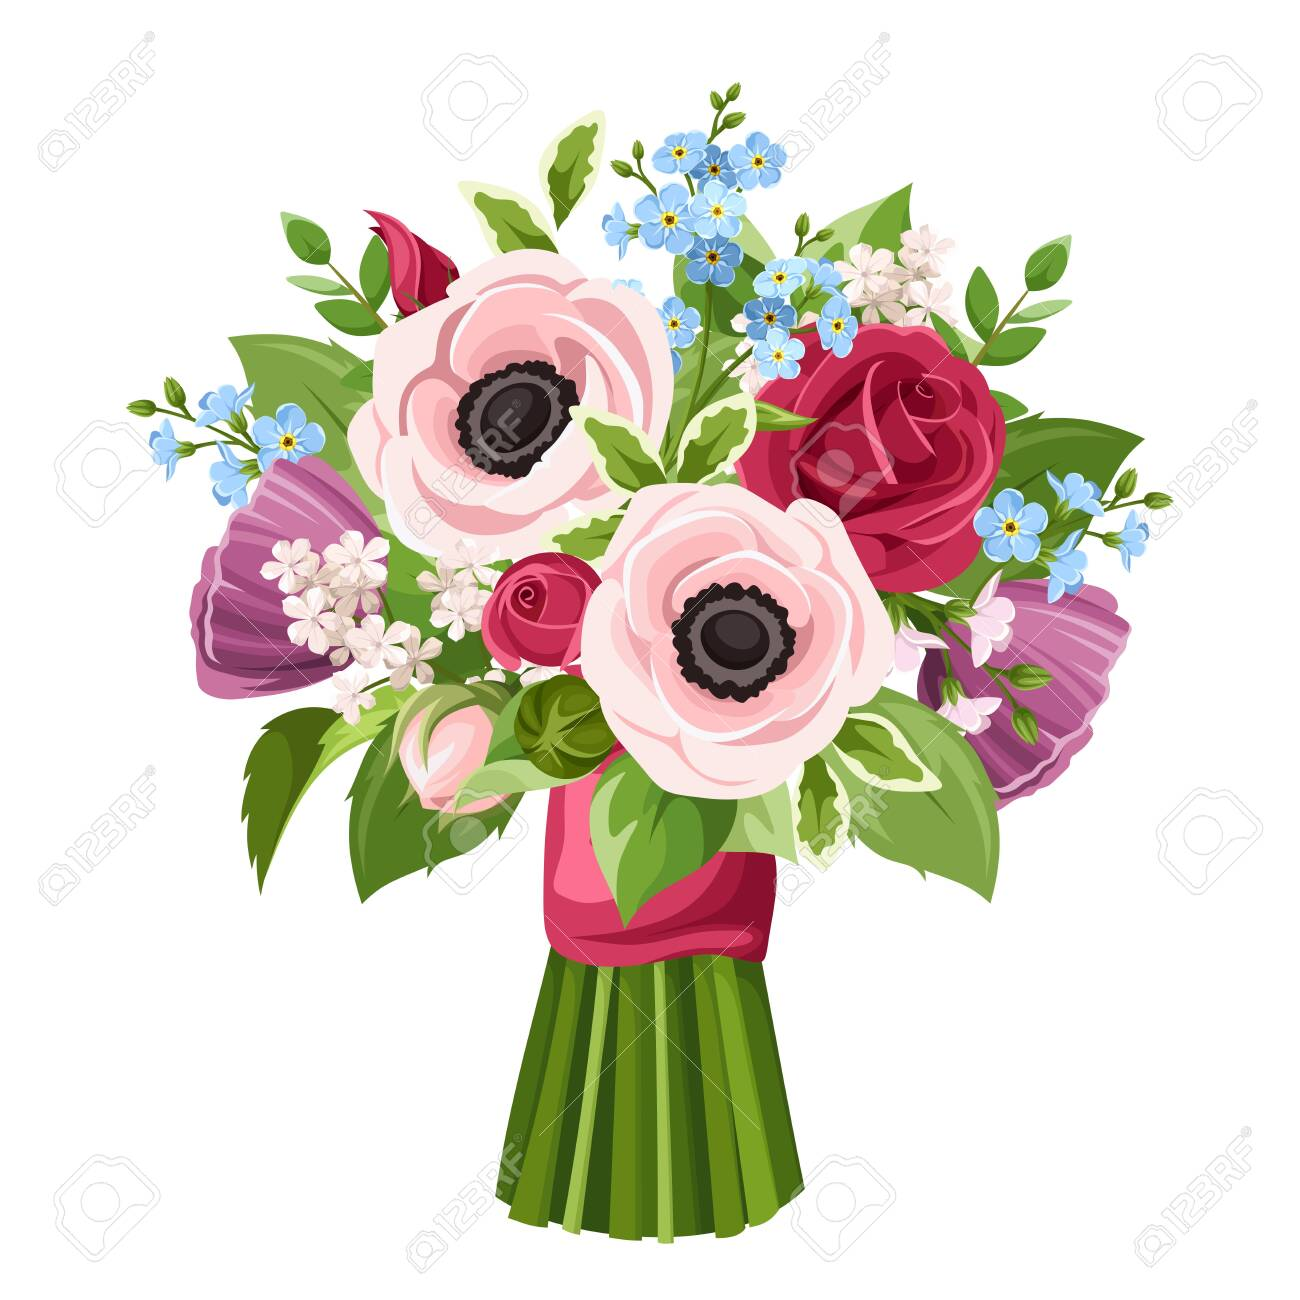 Vector bouquet of red, pink, purple and blue anemones, roses and forget-me-not flowers isolated on a white background. - 144914087